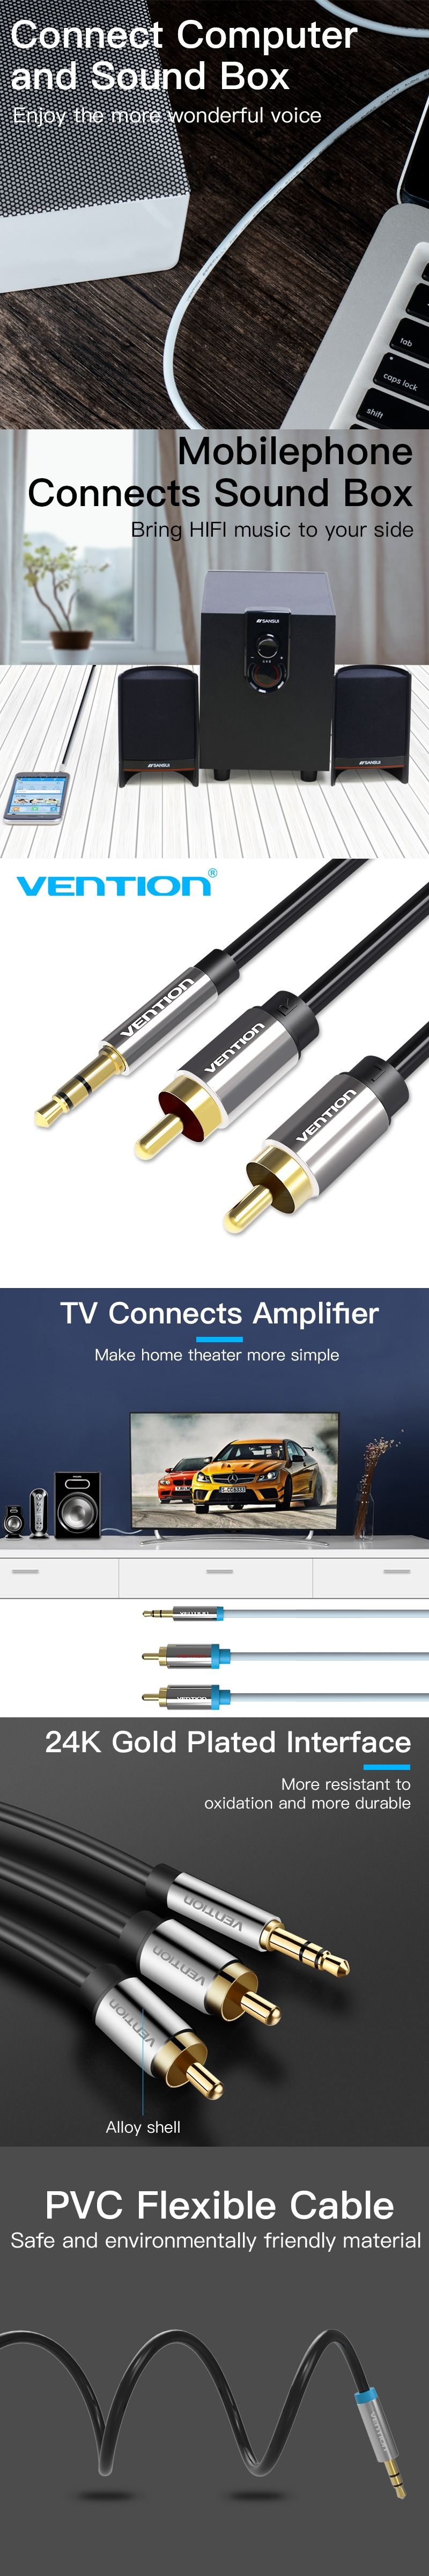 hight resolution of vention 3 5mm rca audio cable jack to 2 rca aux cable for edifer home theater